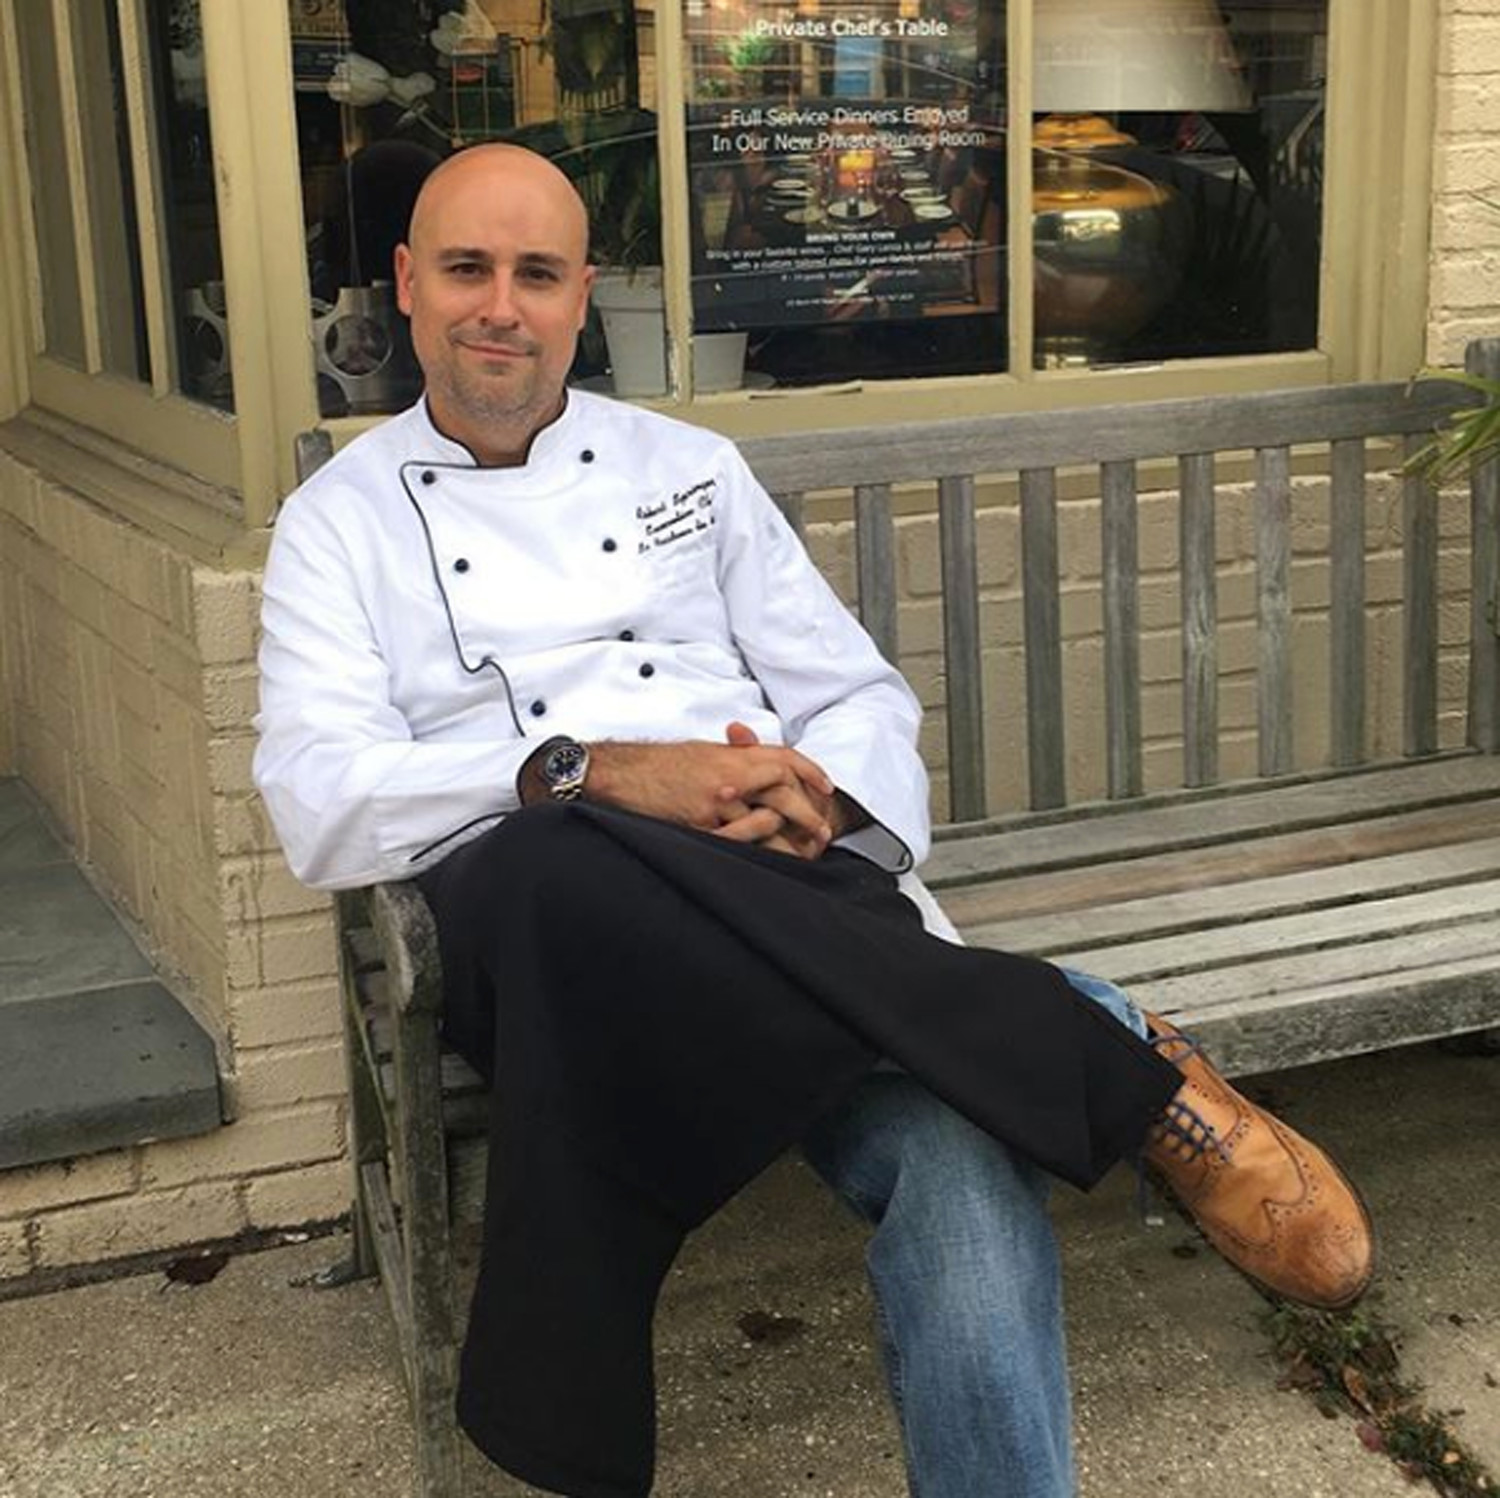 Robert Springer has prepared tasting menus for restaurants in the area, such as Chef's Table in Locust Valley.